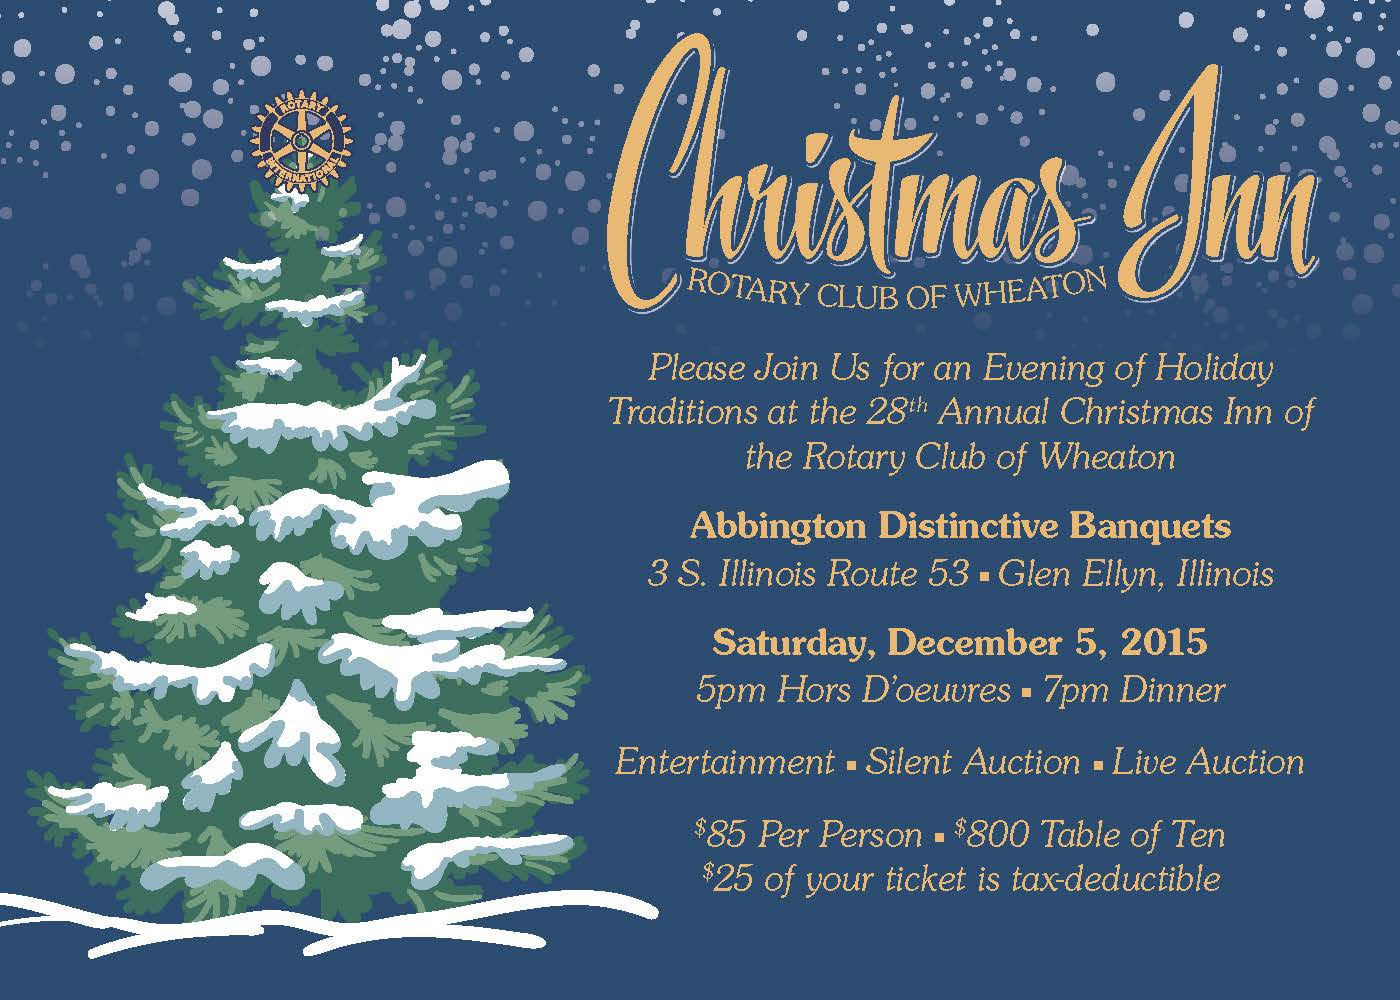 Christmas Inn | Rotary Club of Wheaton